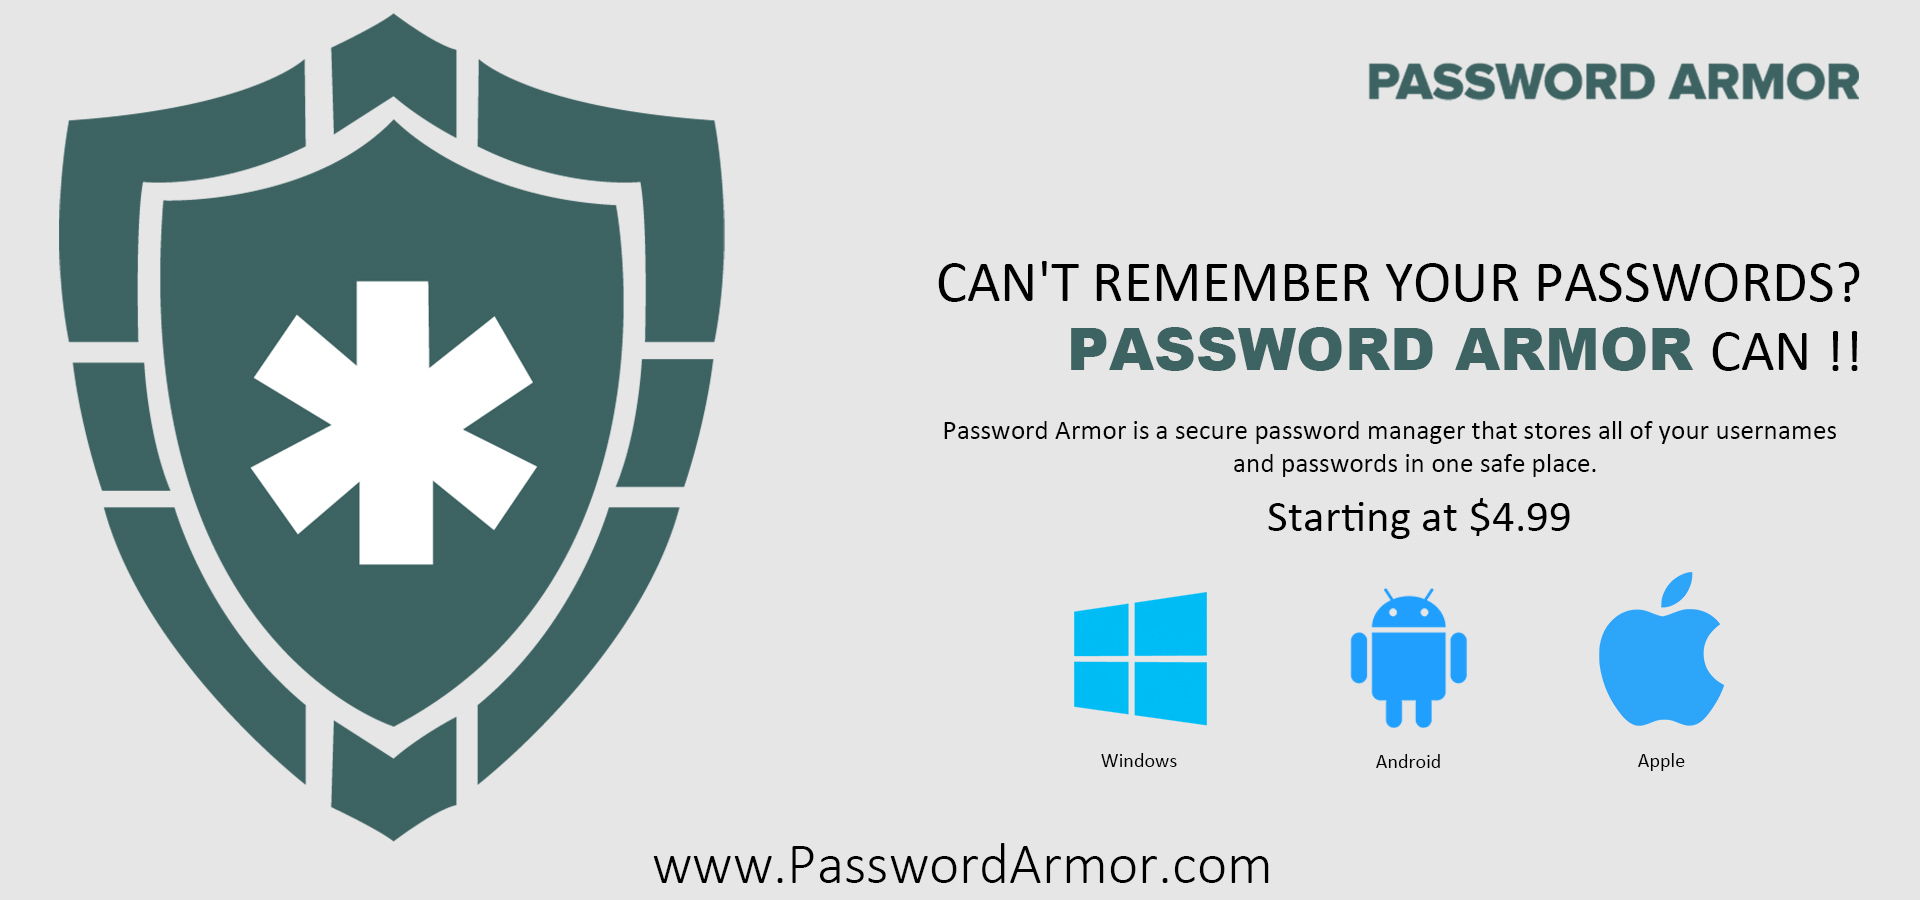 Why do you need a Password Manager like Password Armor?